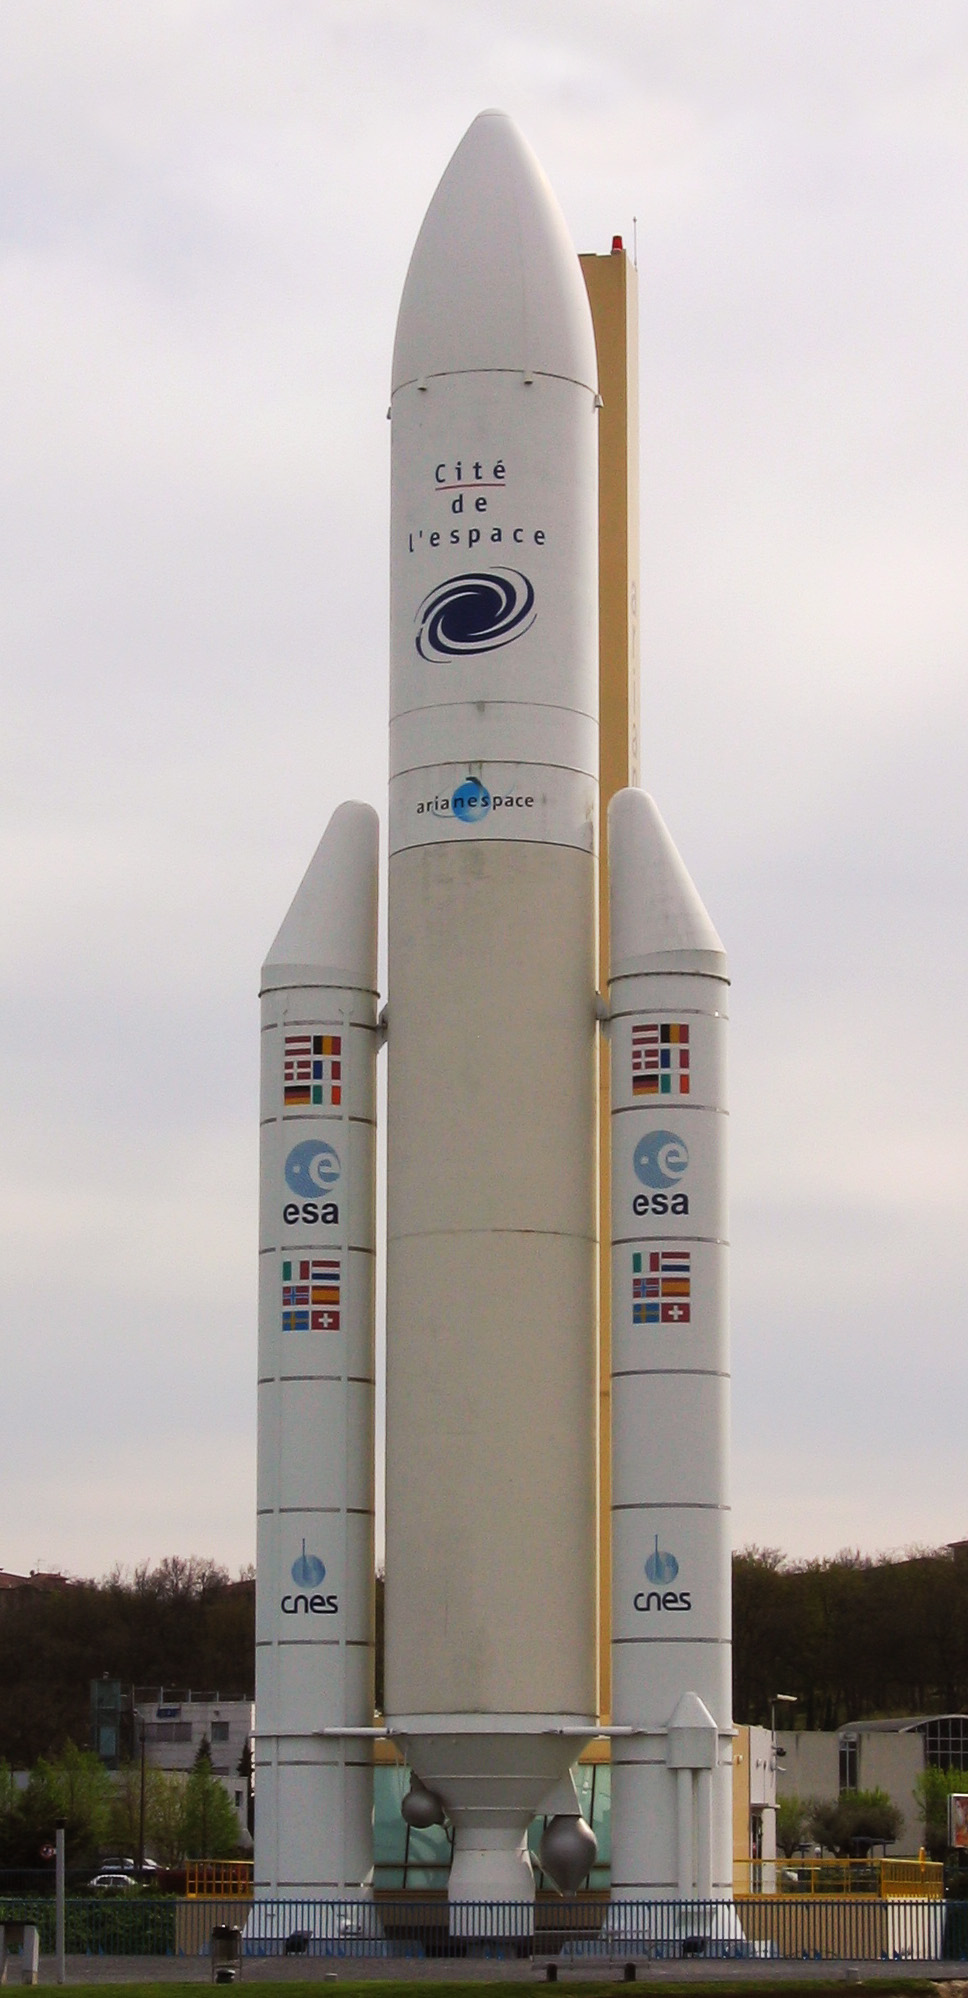 http://upload.wikimedia.org/wikipedia/commons/2/24/Ariane_5_%28mock-up%29.jpg